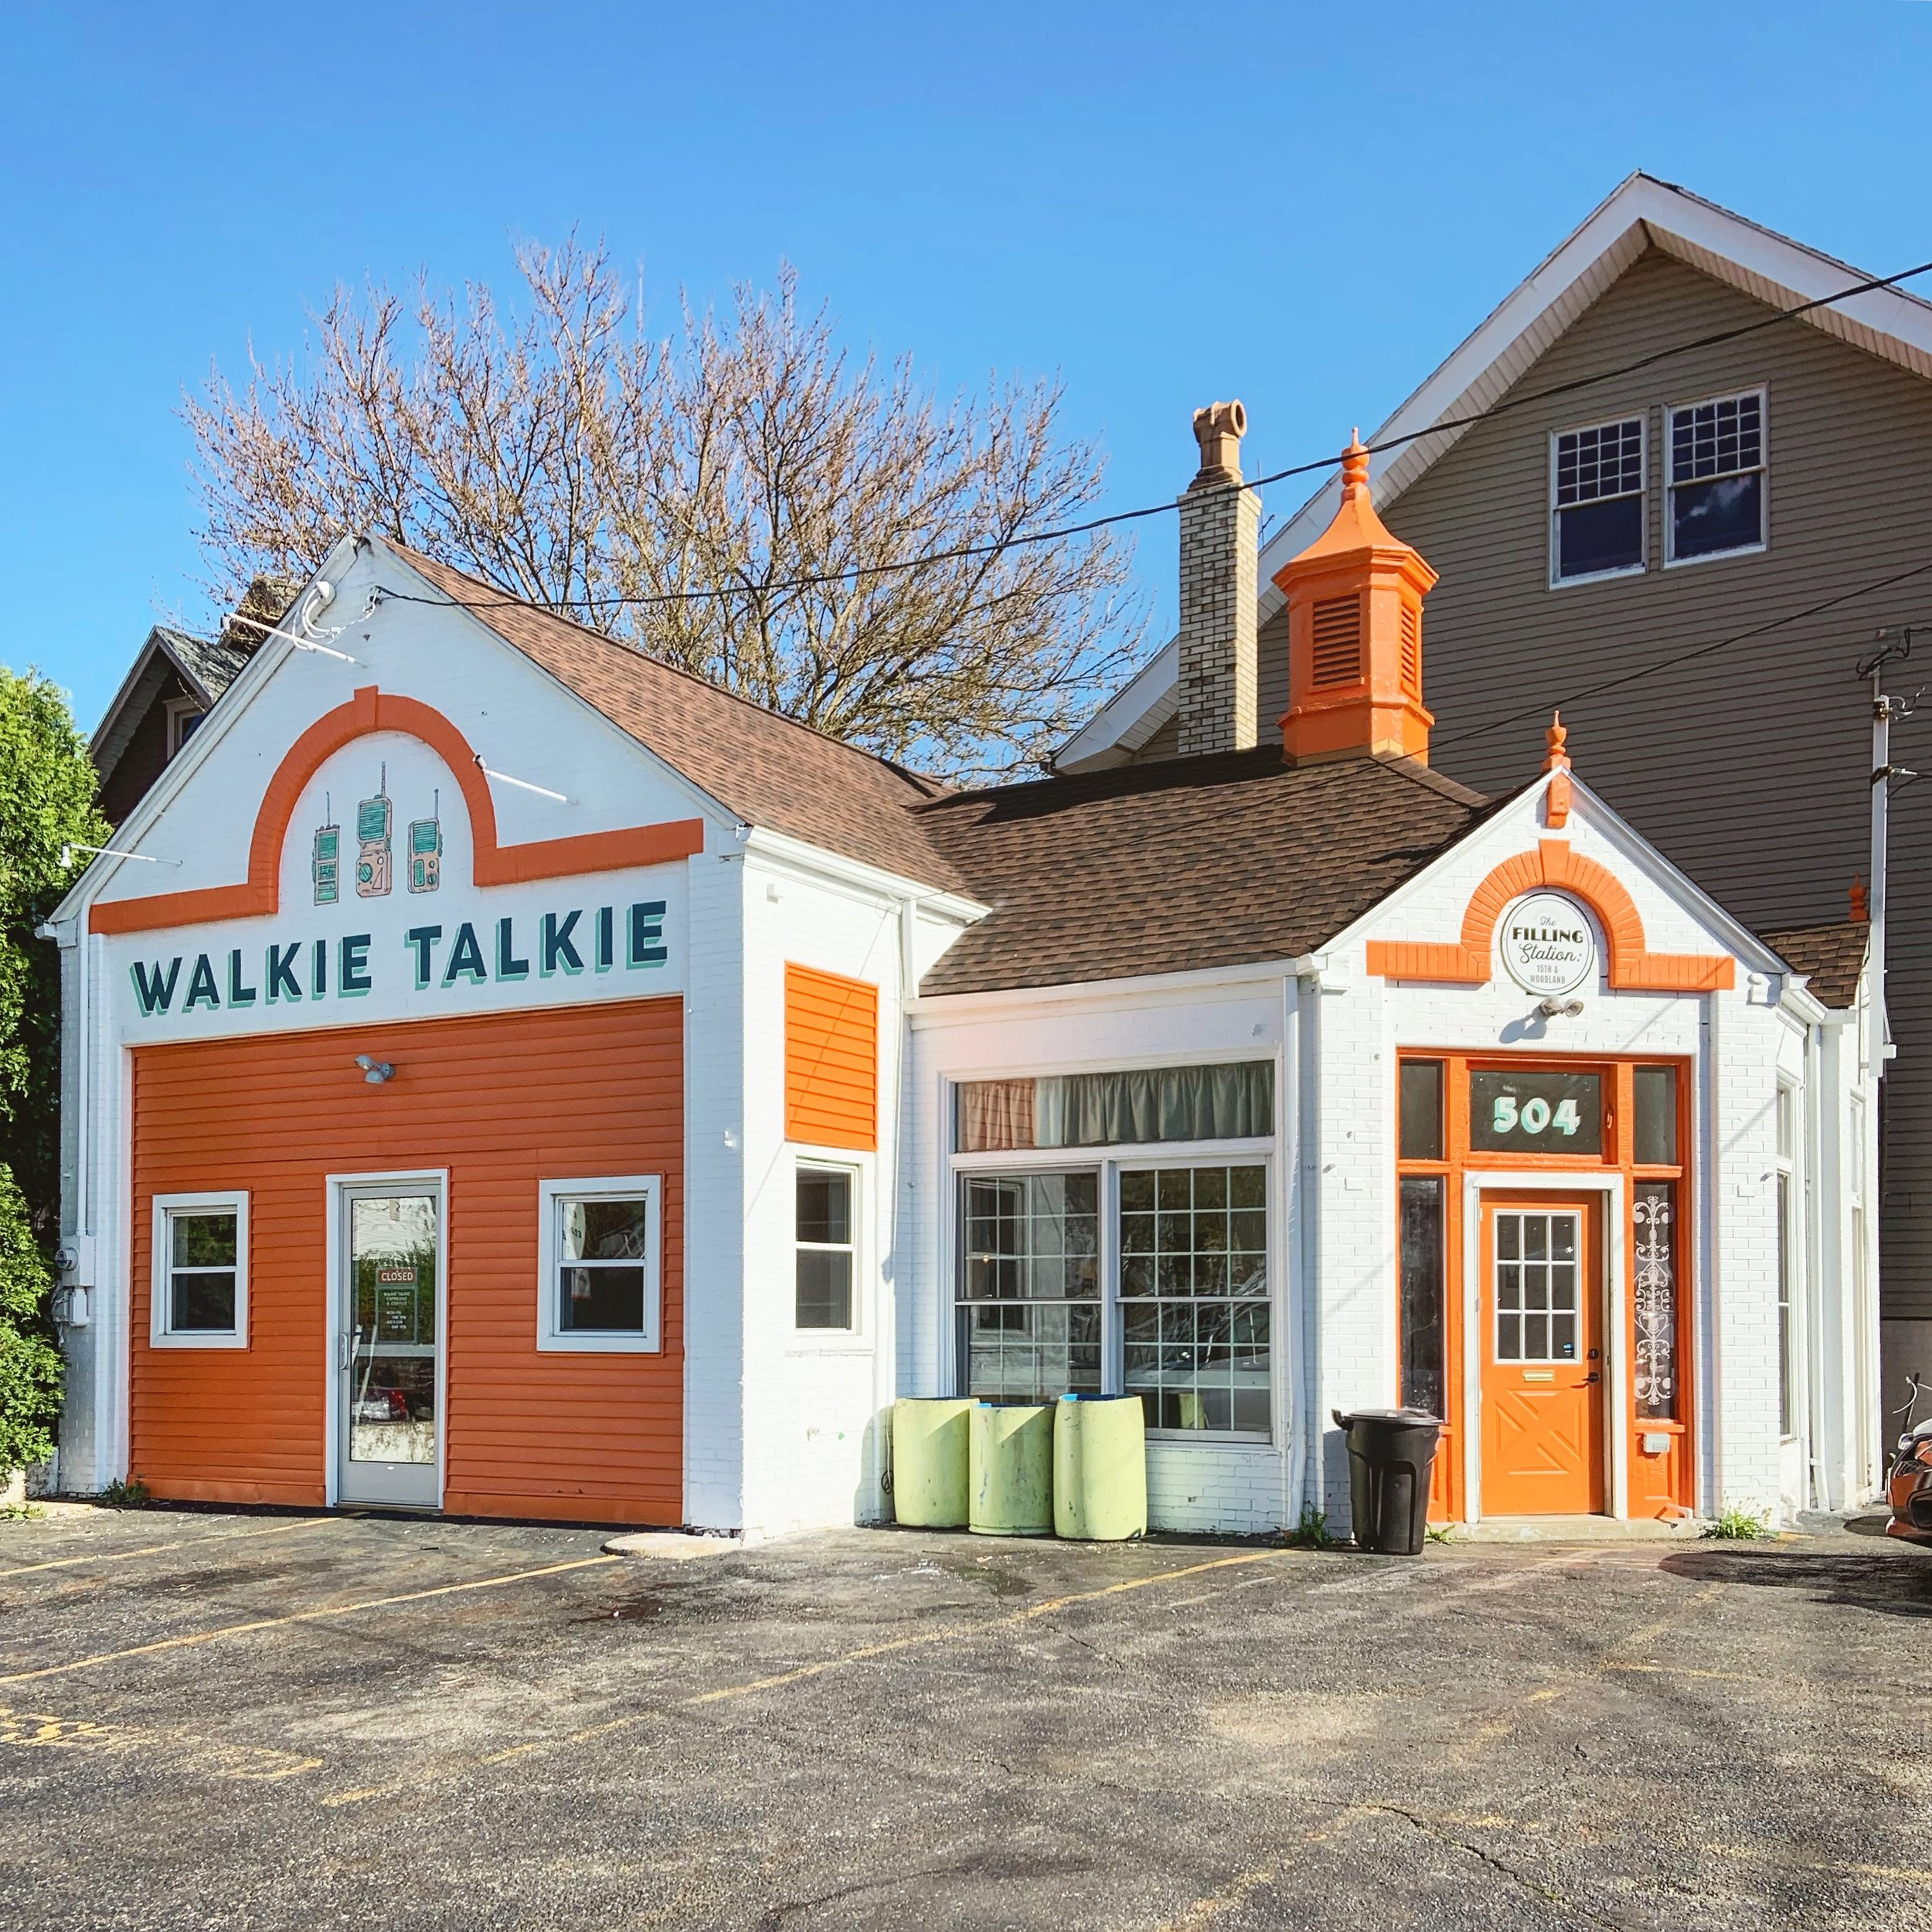 The Walkie Talkie coffee shop in Canton, Ohio, has transformed an old automotive space.